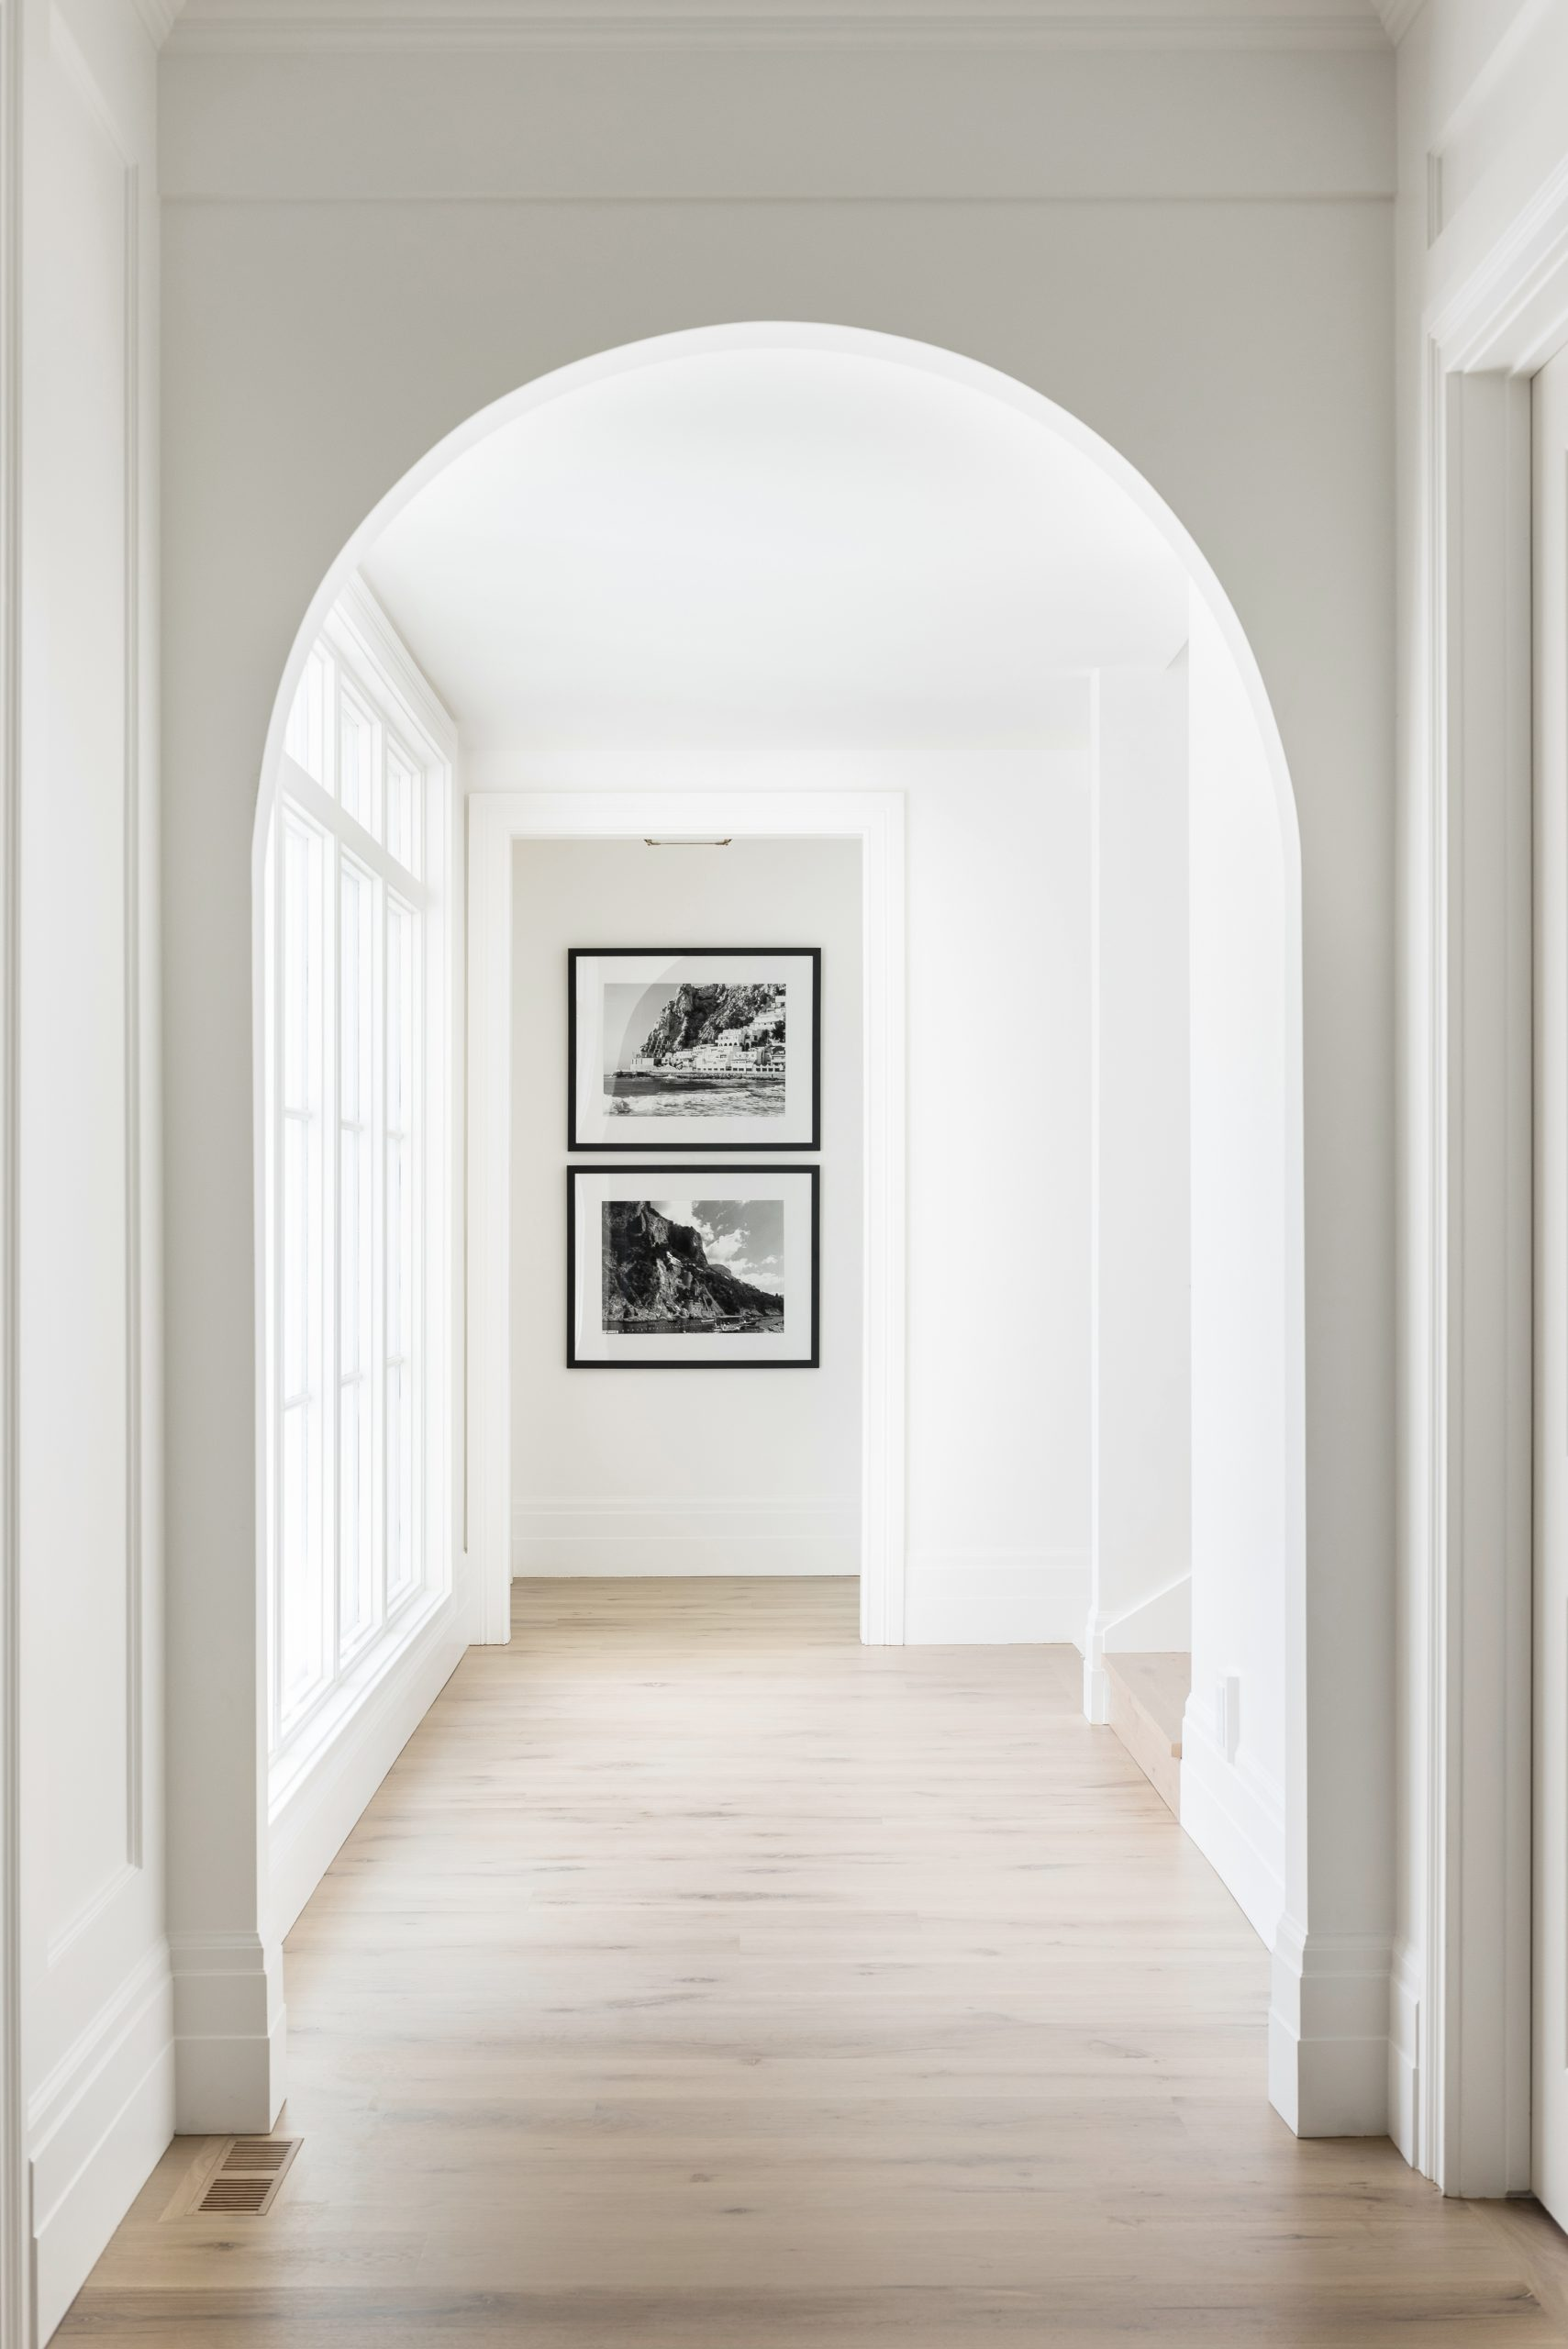 Incorporating Curved Elements in Your Space